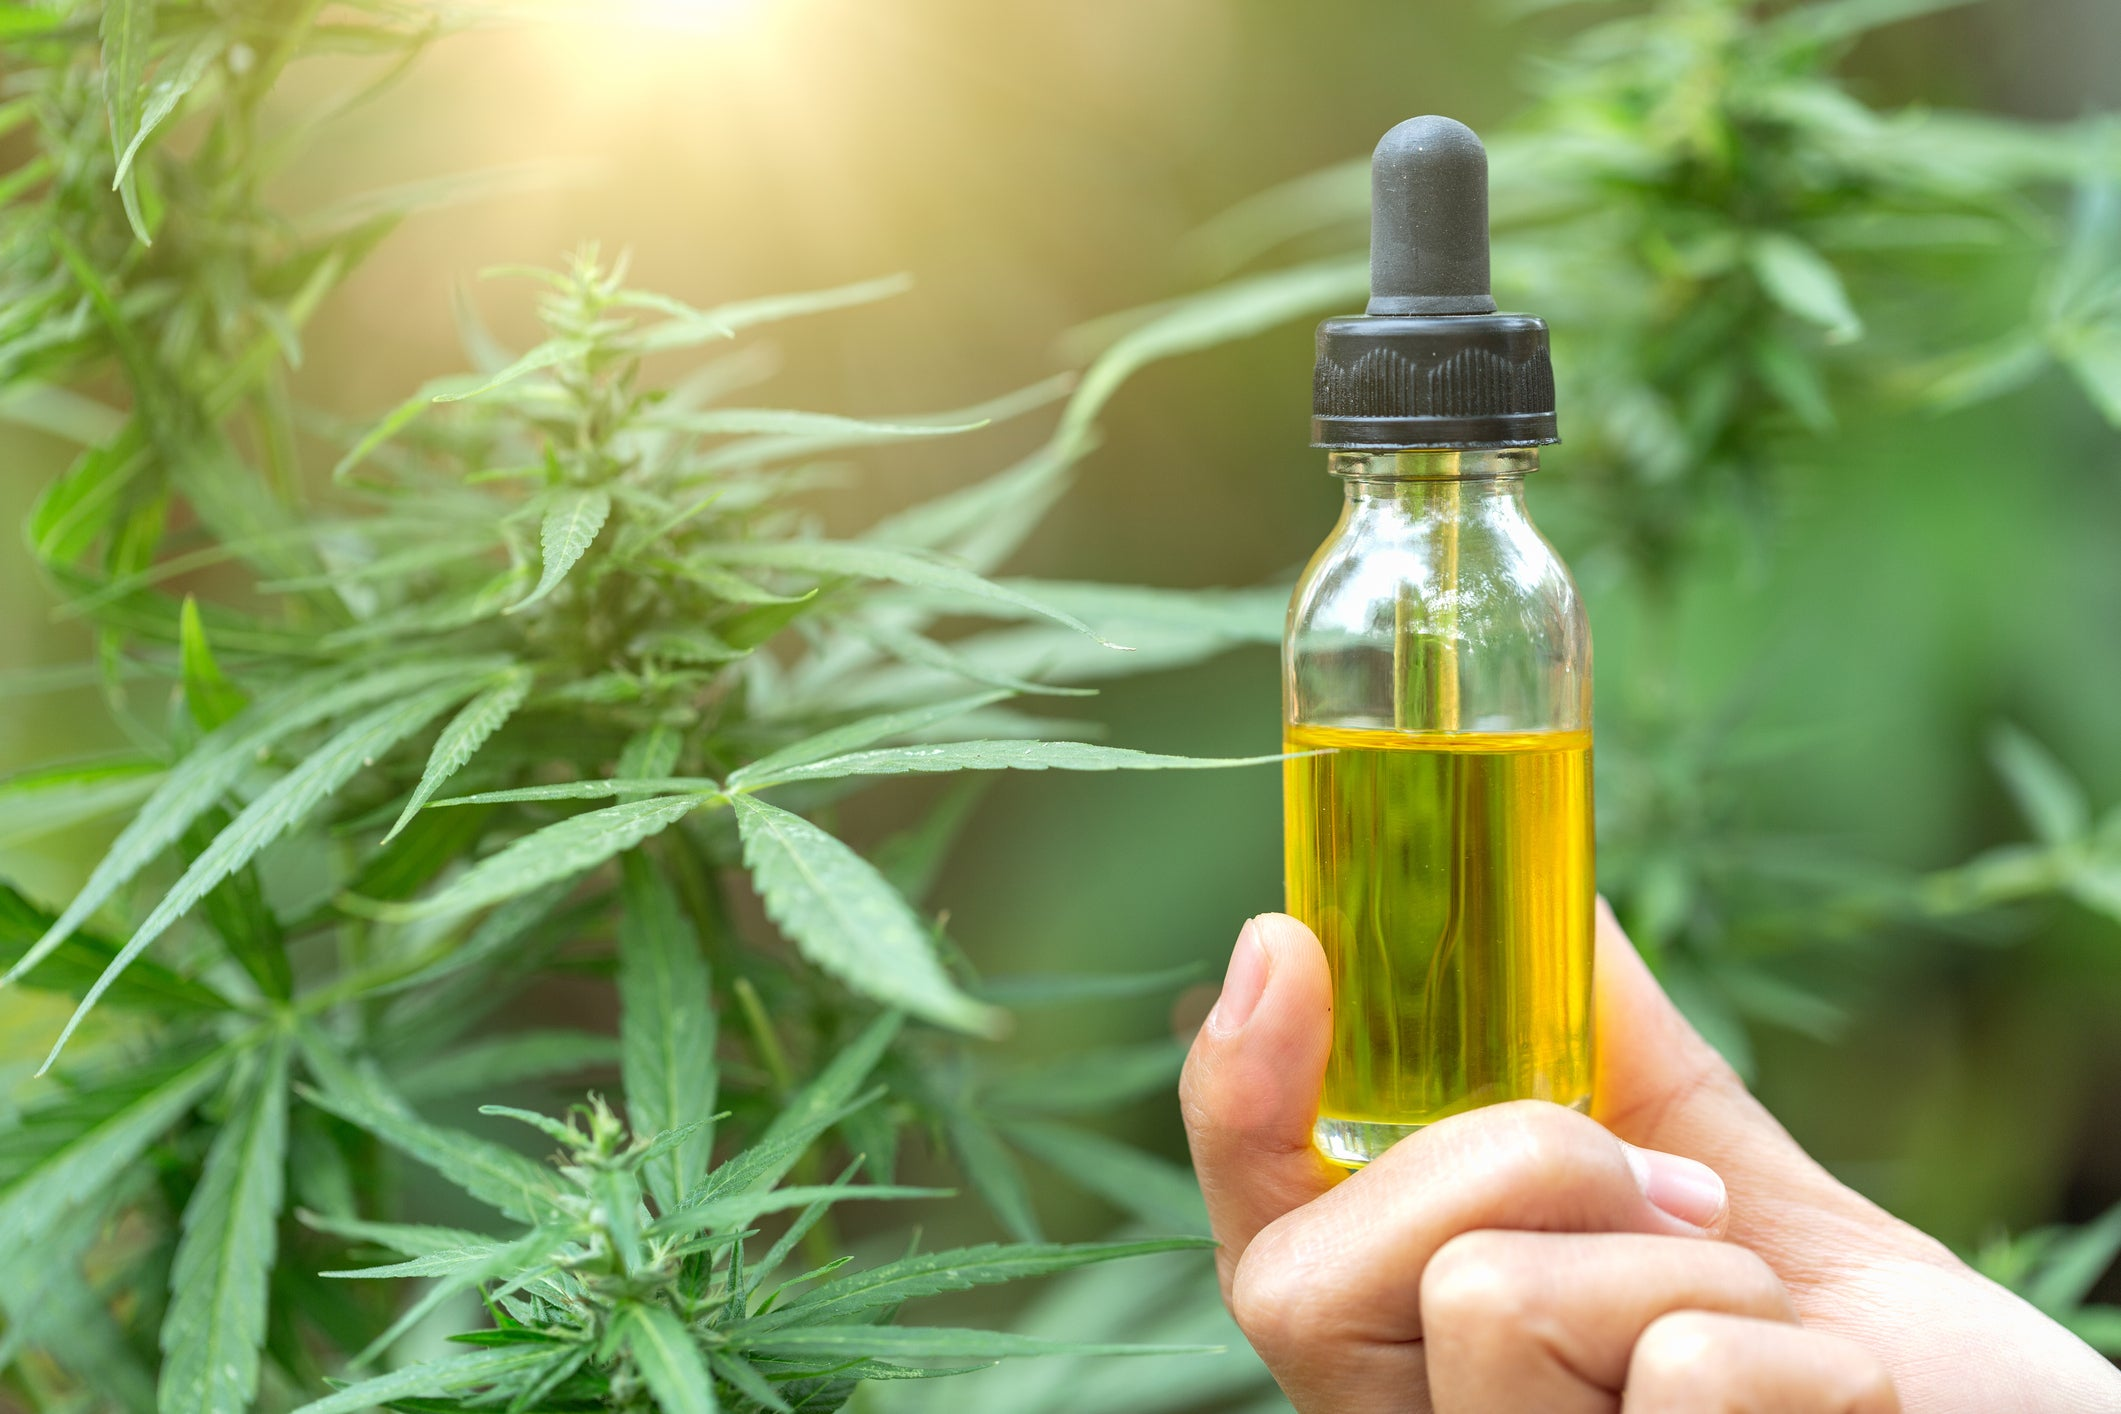 More About What Are The Health Benefits Of Cbd Oil?